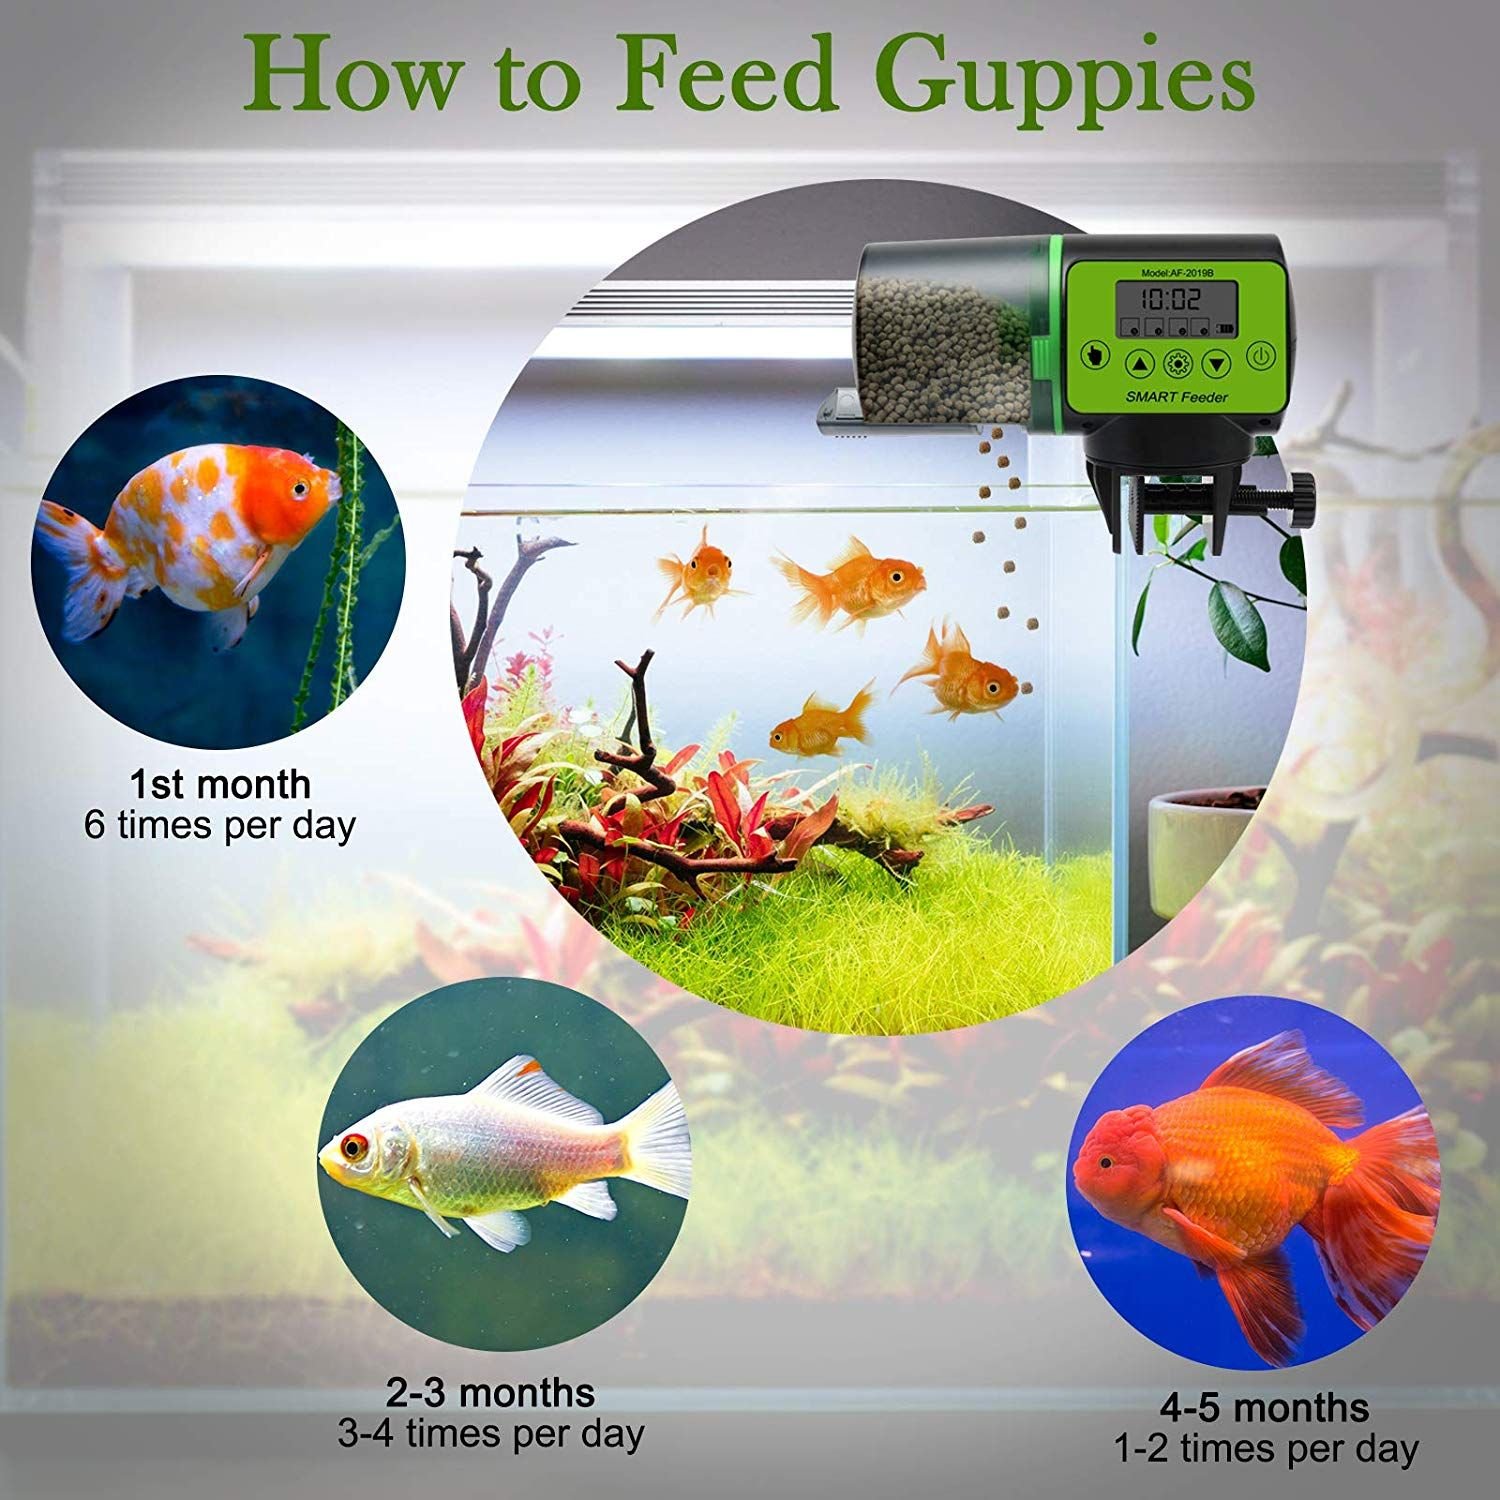 Large Capacity 200ml Fish Food Dispenser Large 200ml Capacity Of The Automatic Fish Feeder Is Suitable For Various Fish Foods Such As Flakes Pellets Powders A